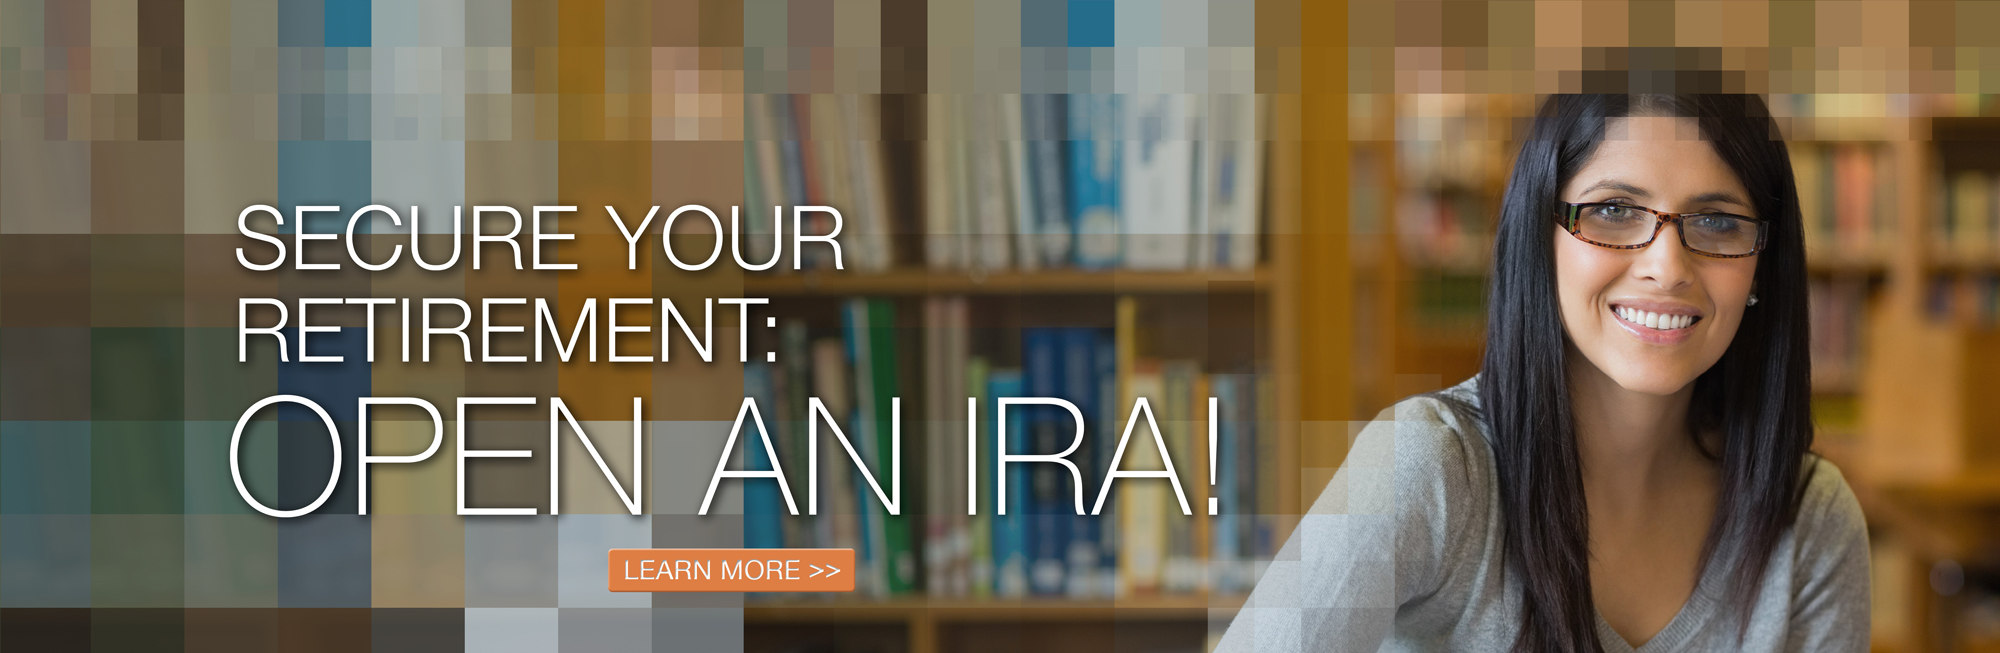 Secure your retirement when you open an Individual Retirement Account (IRA). Click to learn more.